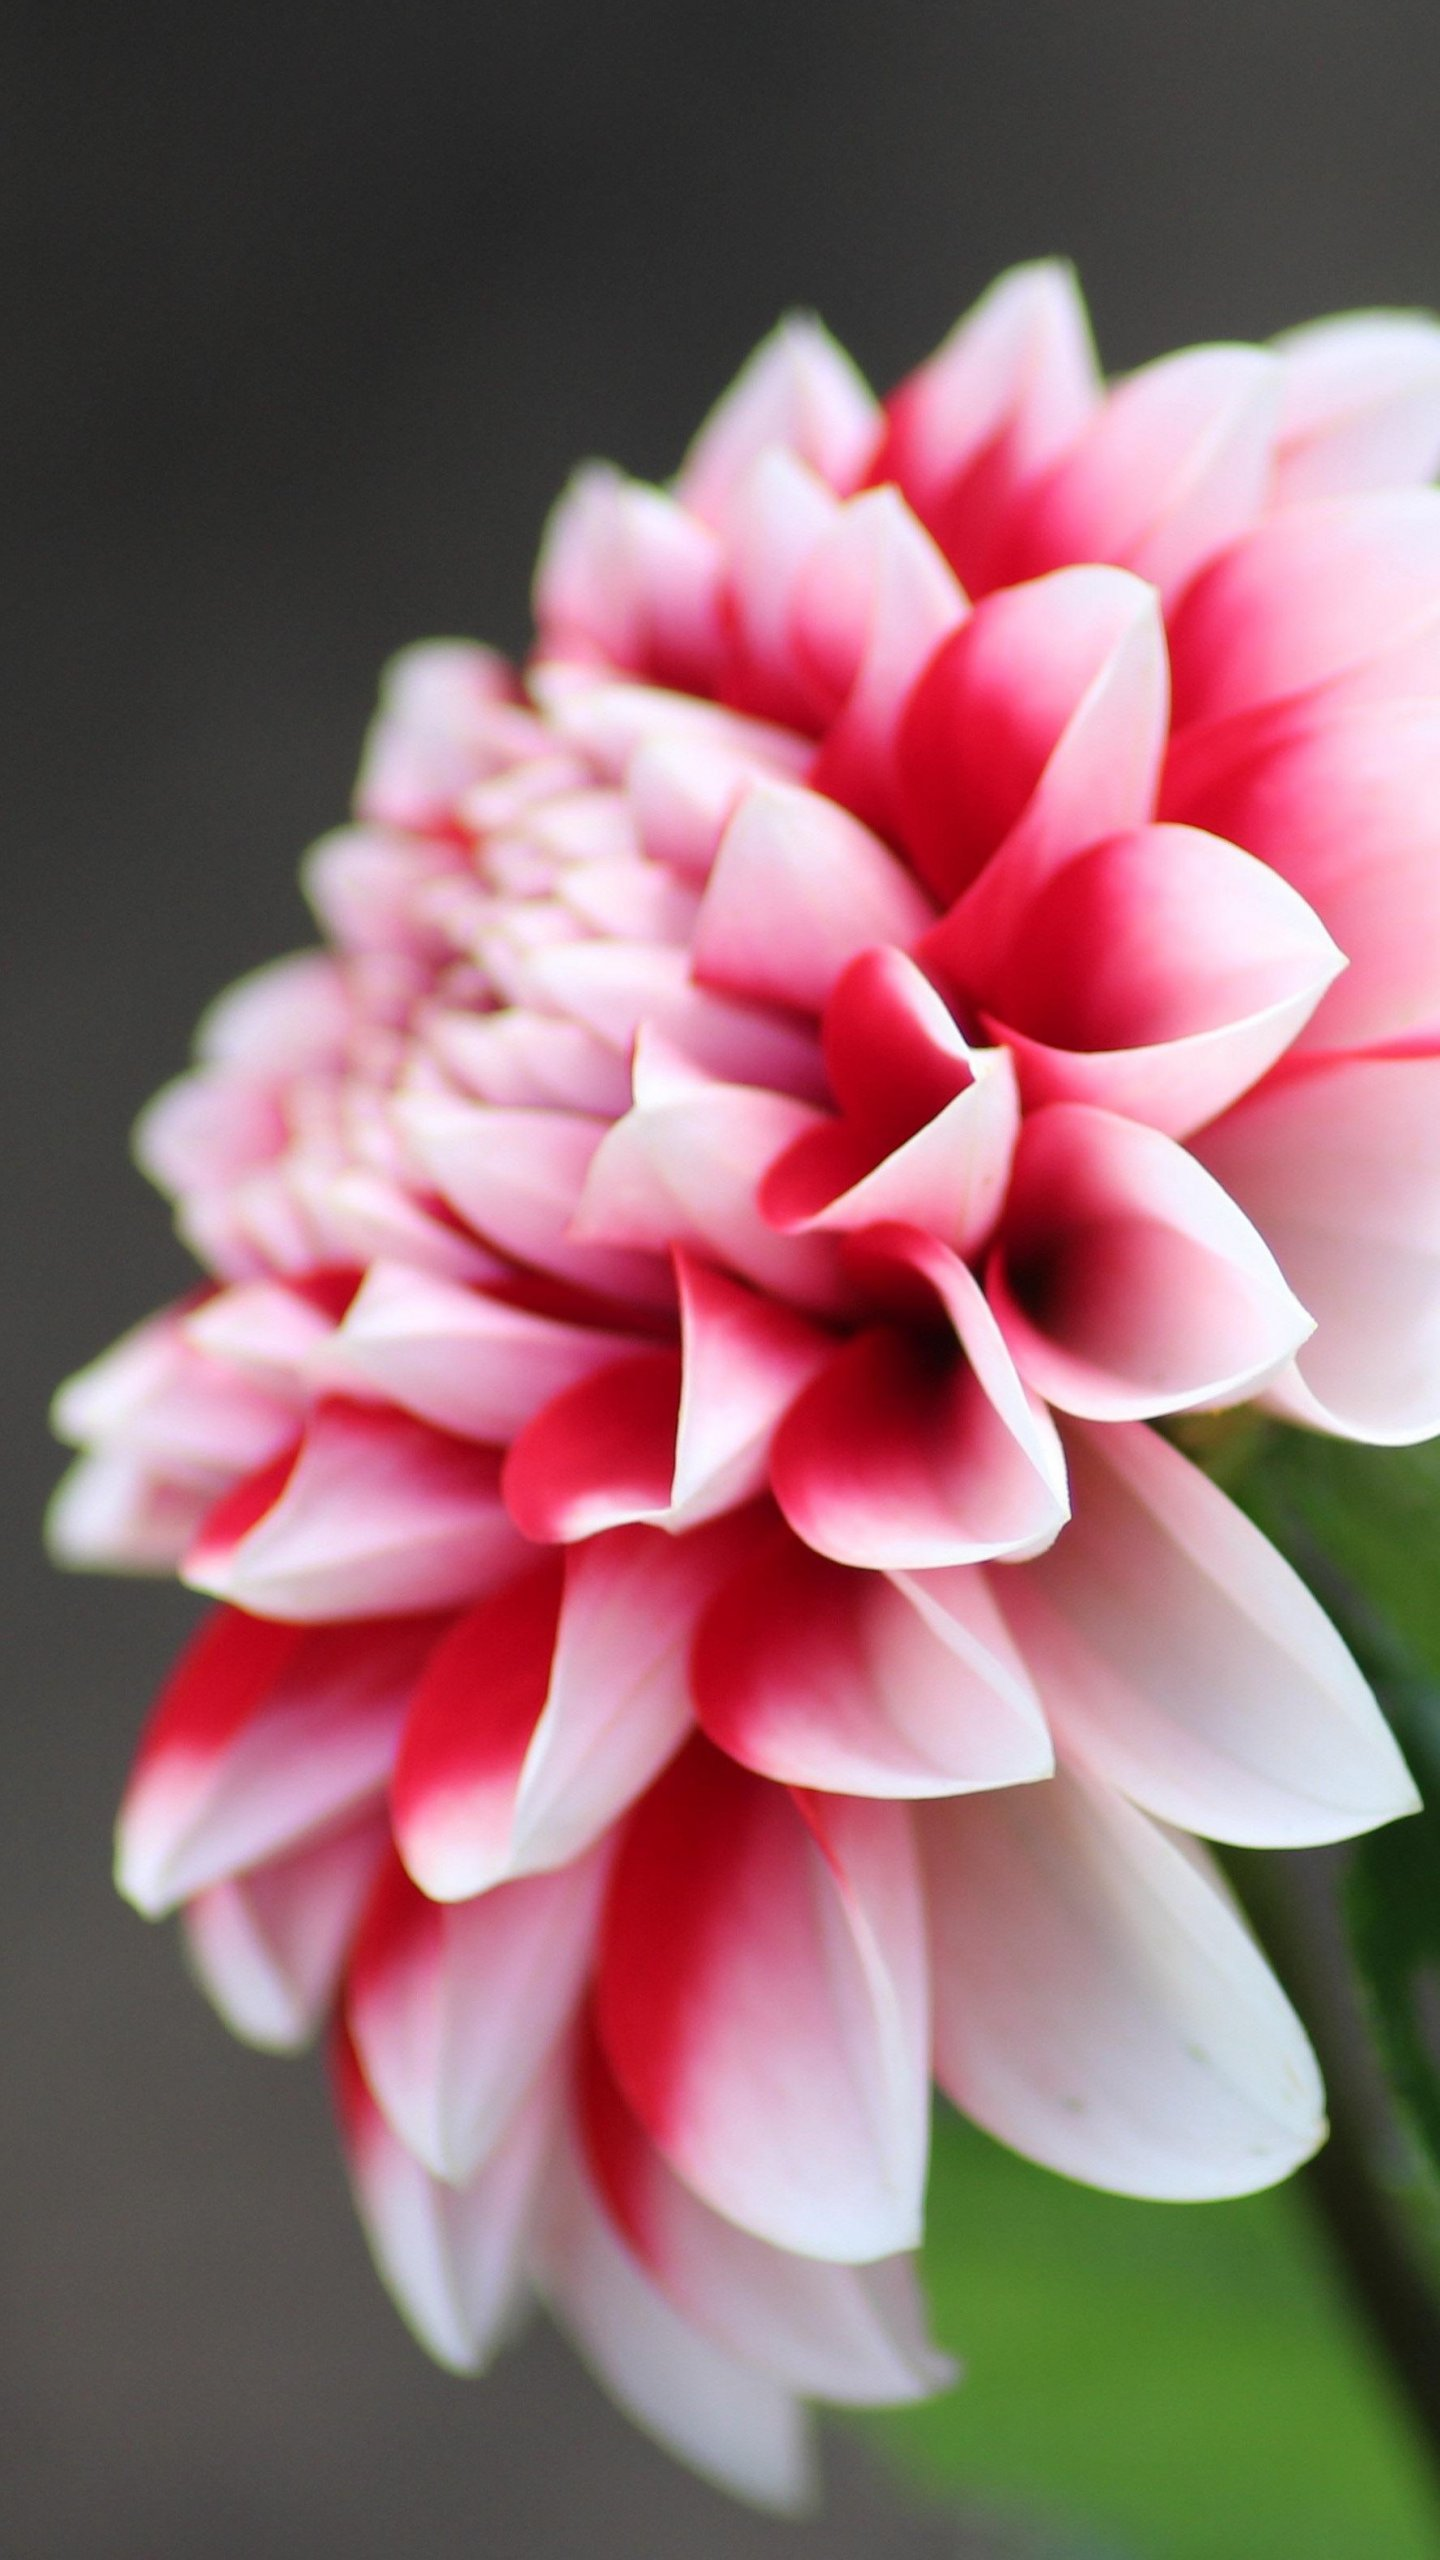 Dahlia Flower Wallpaper Iphone Android Desktop Backgrounds